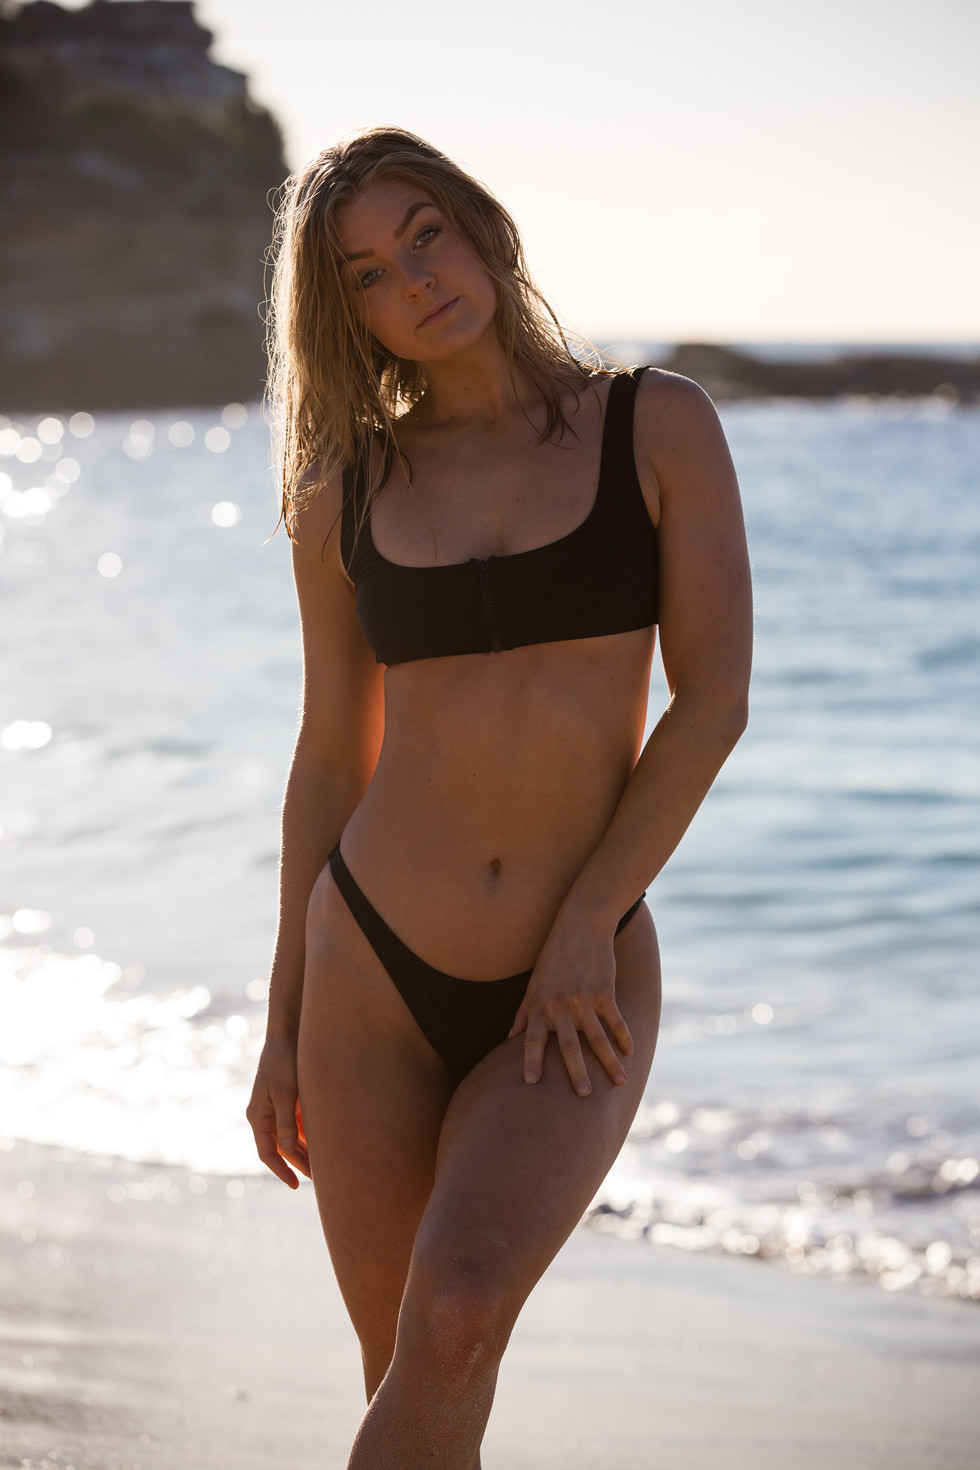 Felicia_by_CoogeePhotography-134264.jpg